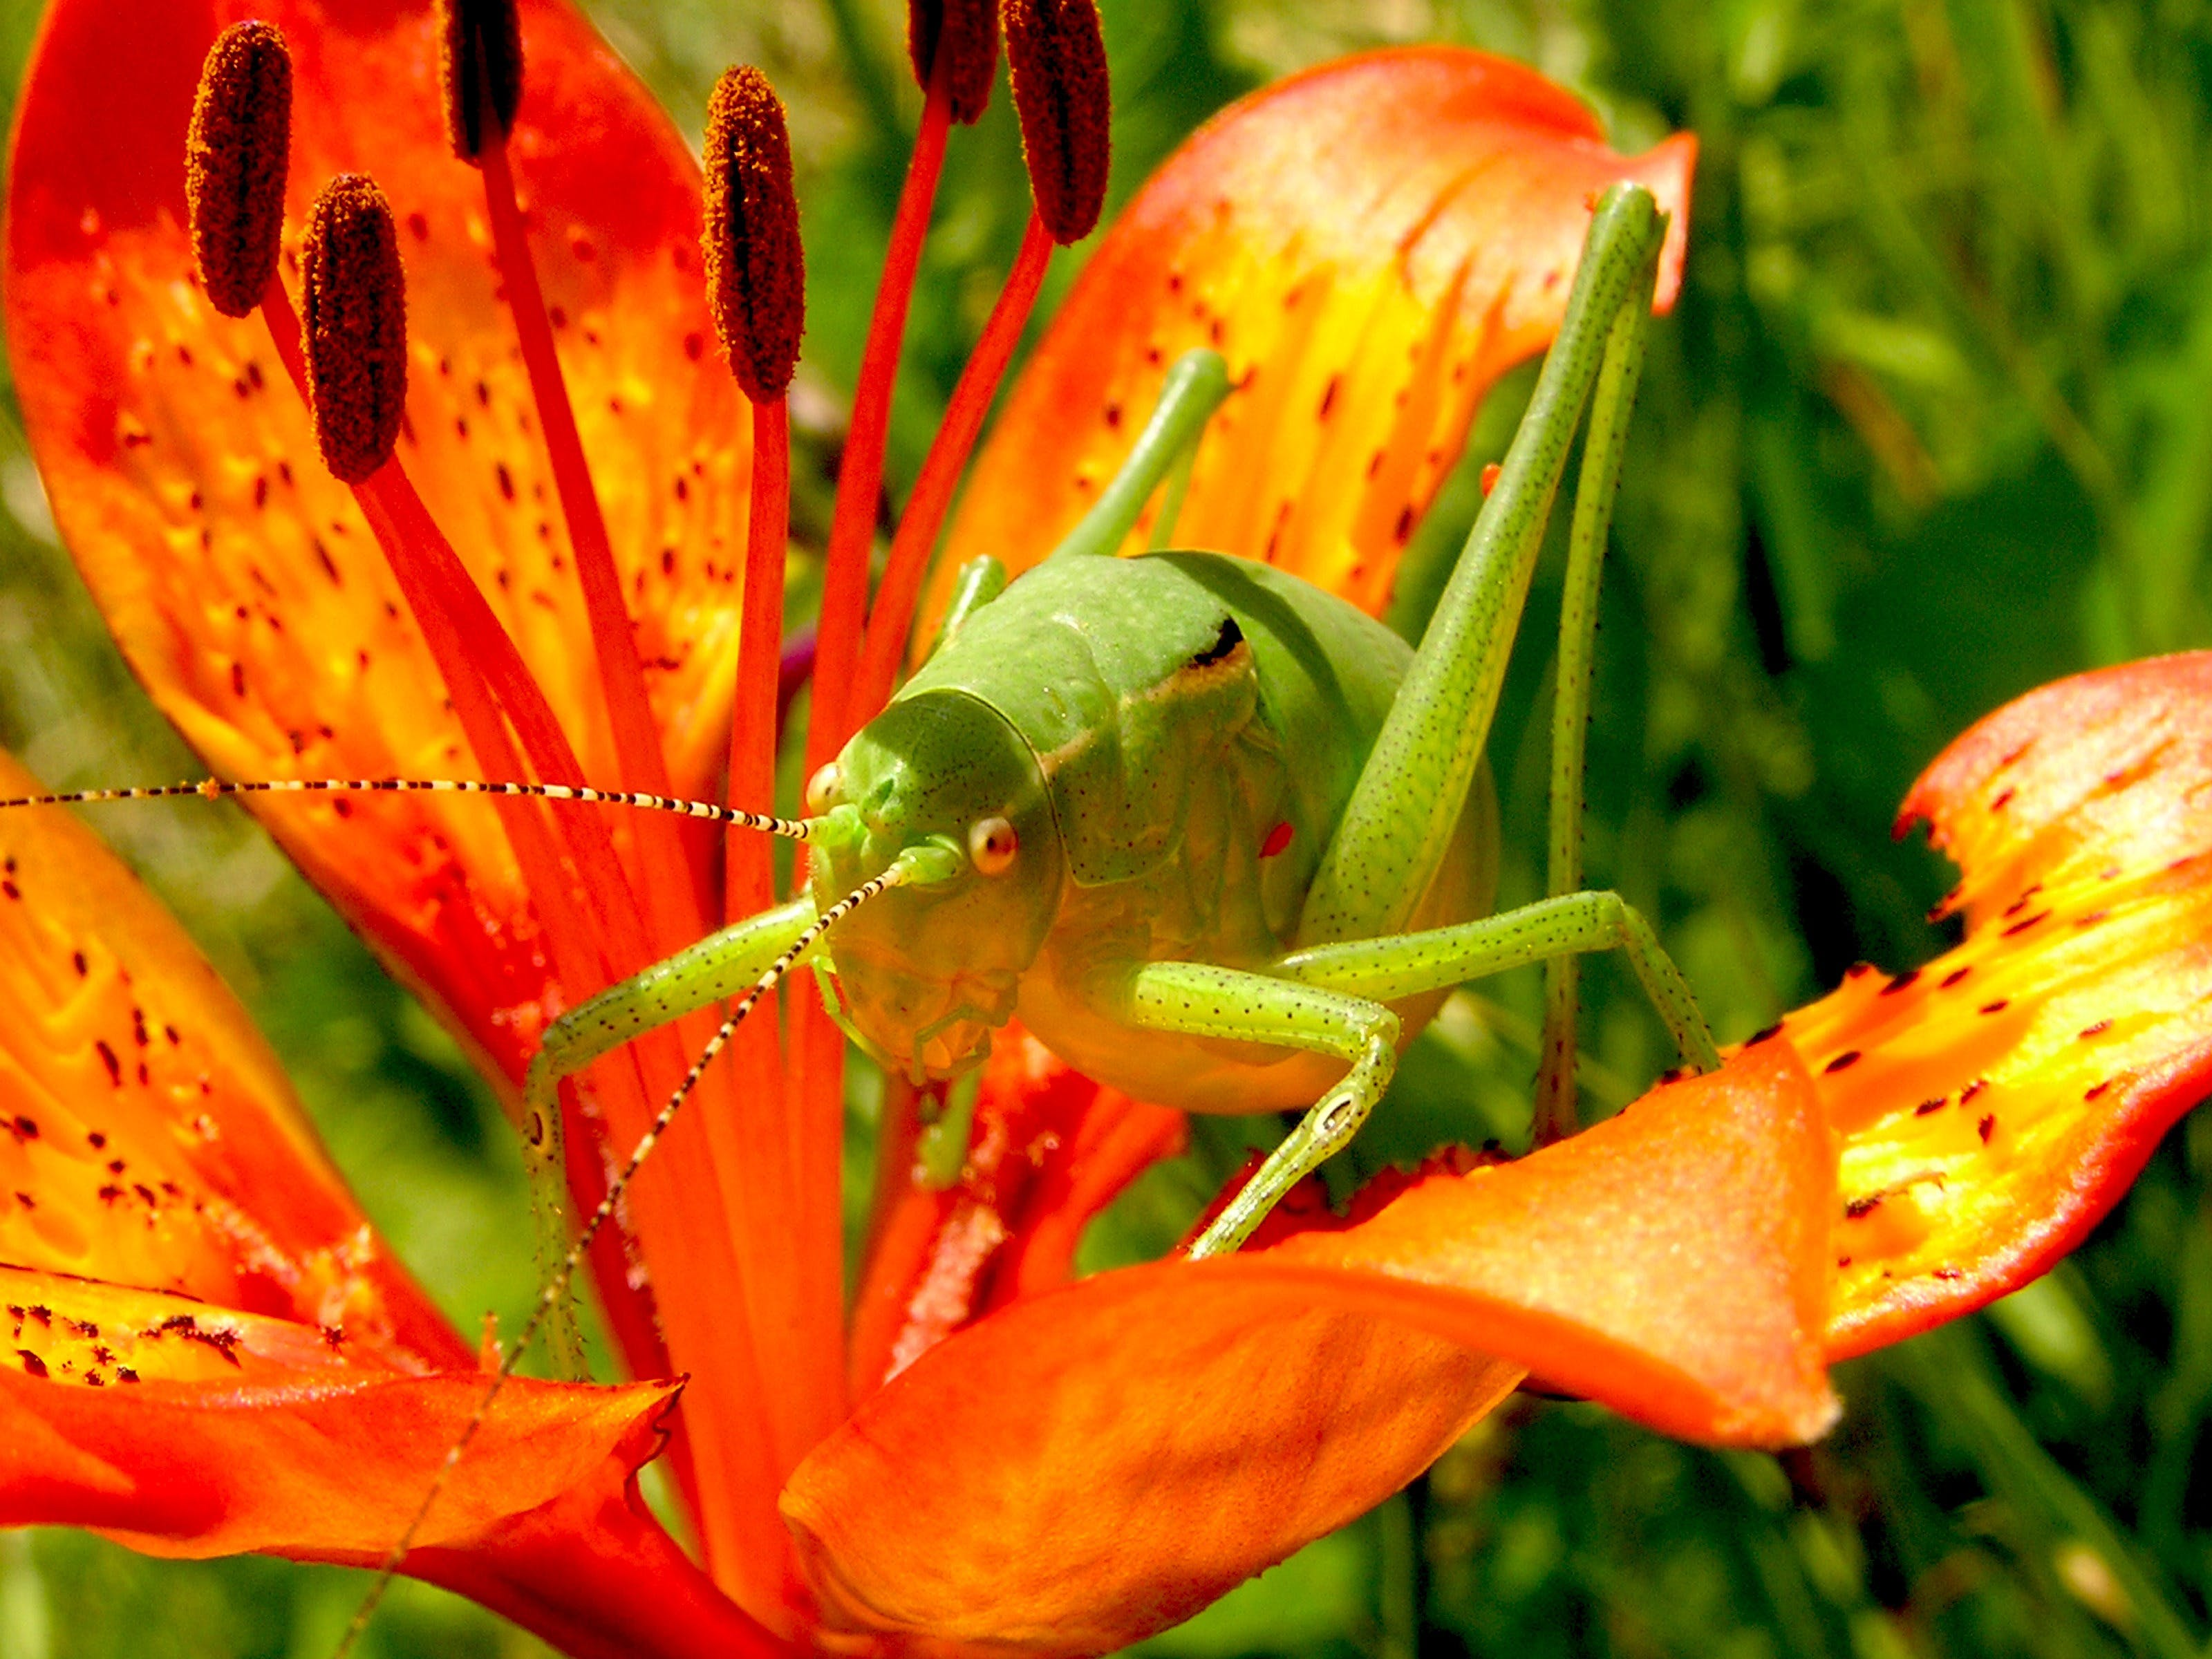 Green Grasshopper on Red 5 Petaled Flower